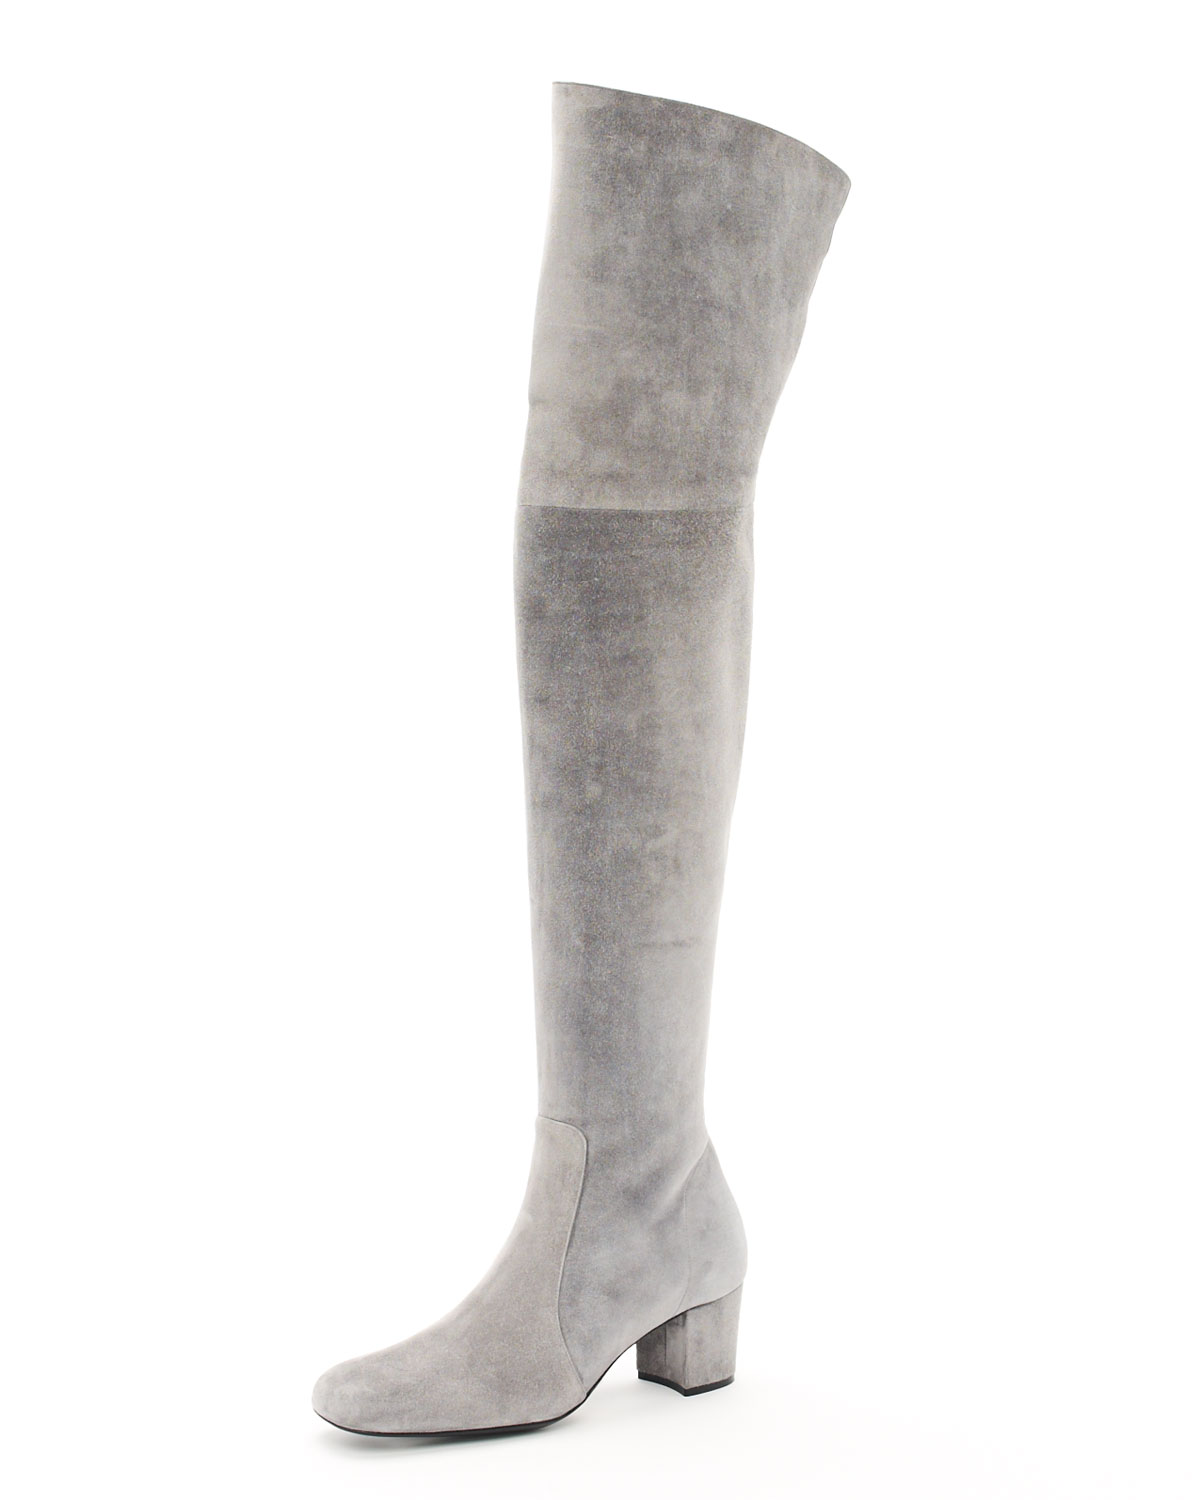 Michael kors Over-the-knee Suede Boot in Gray | Lyst